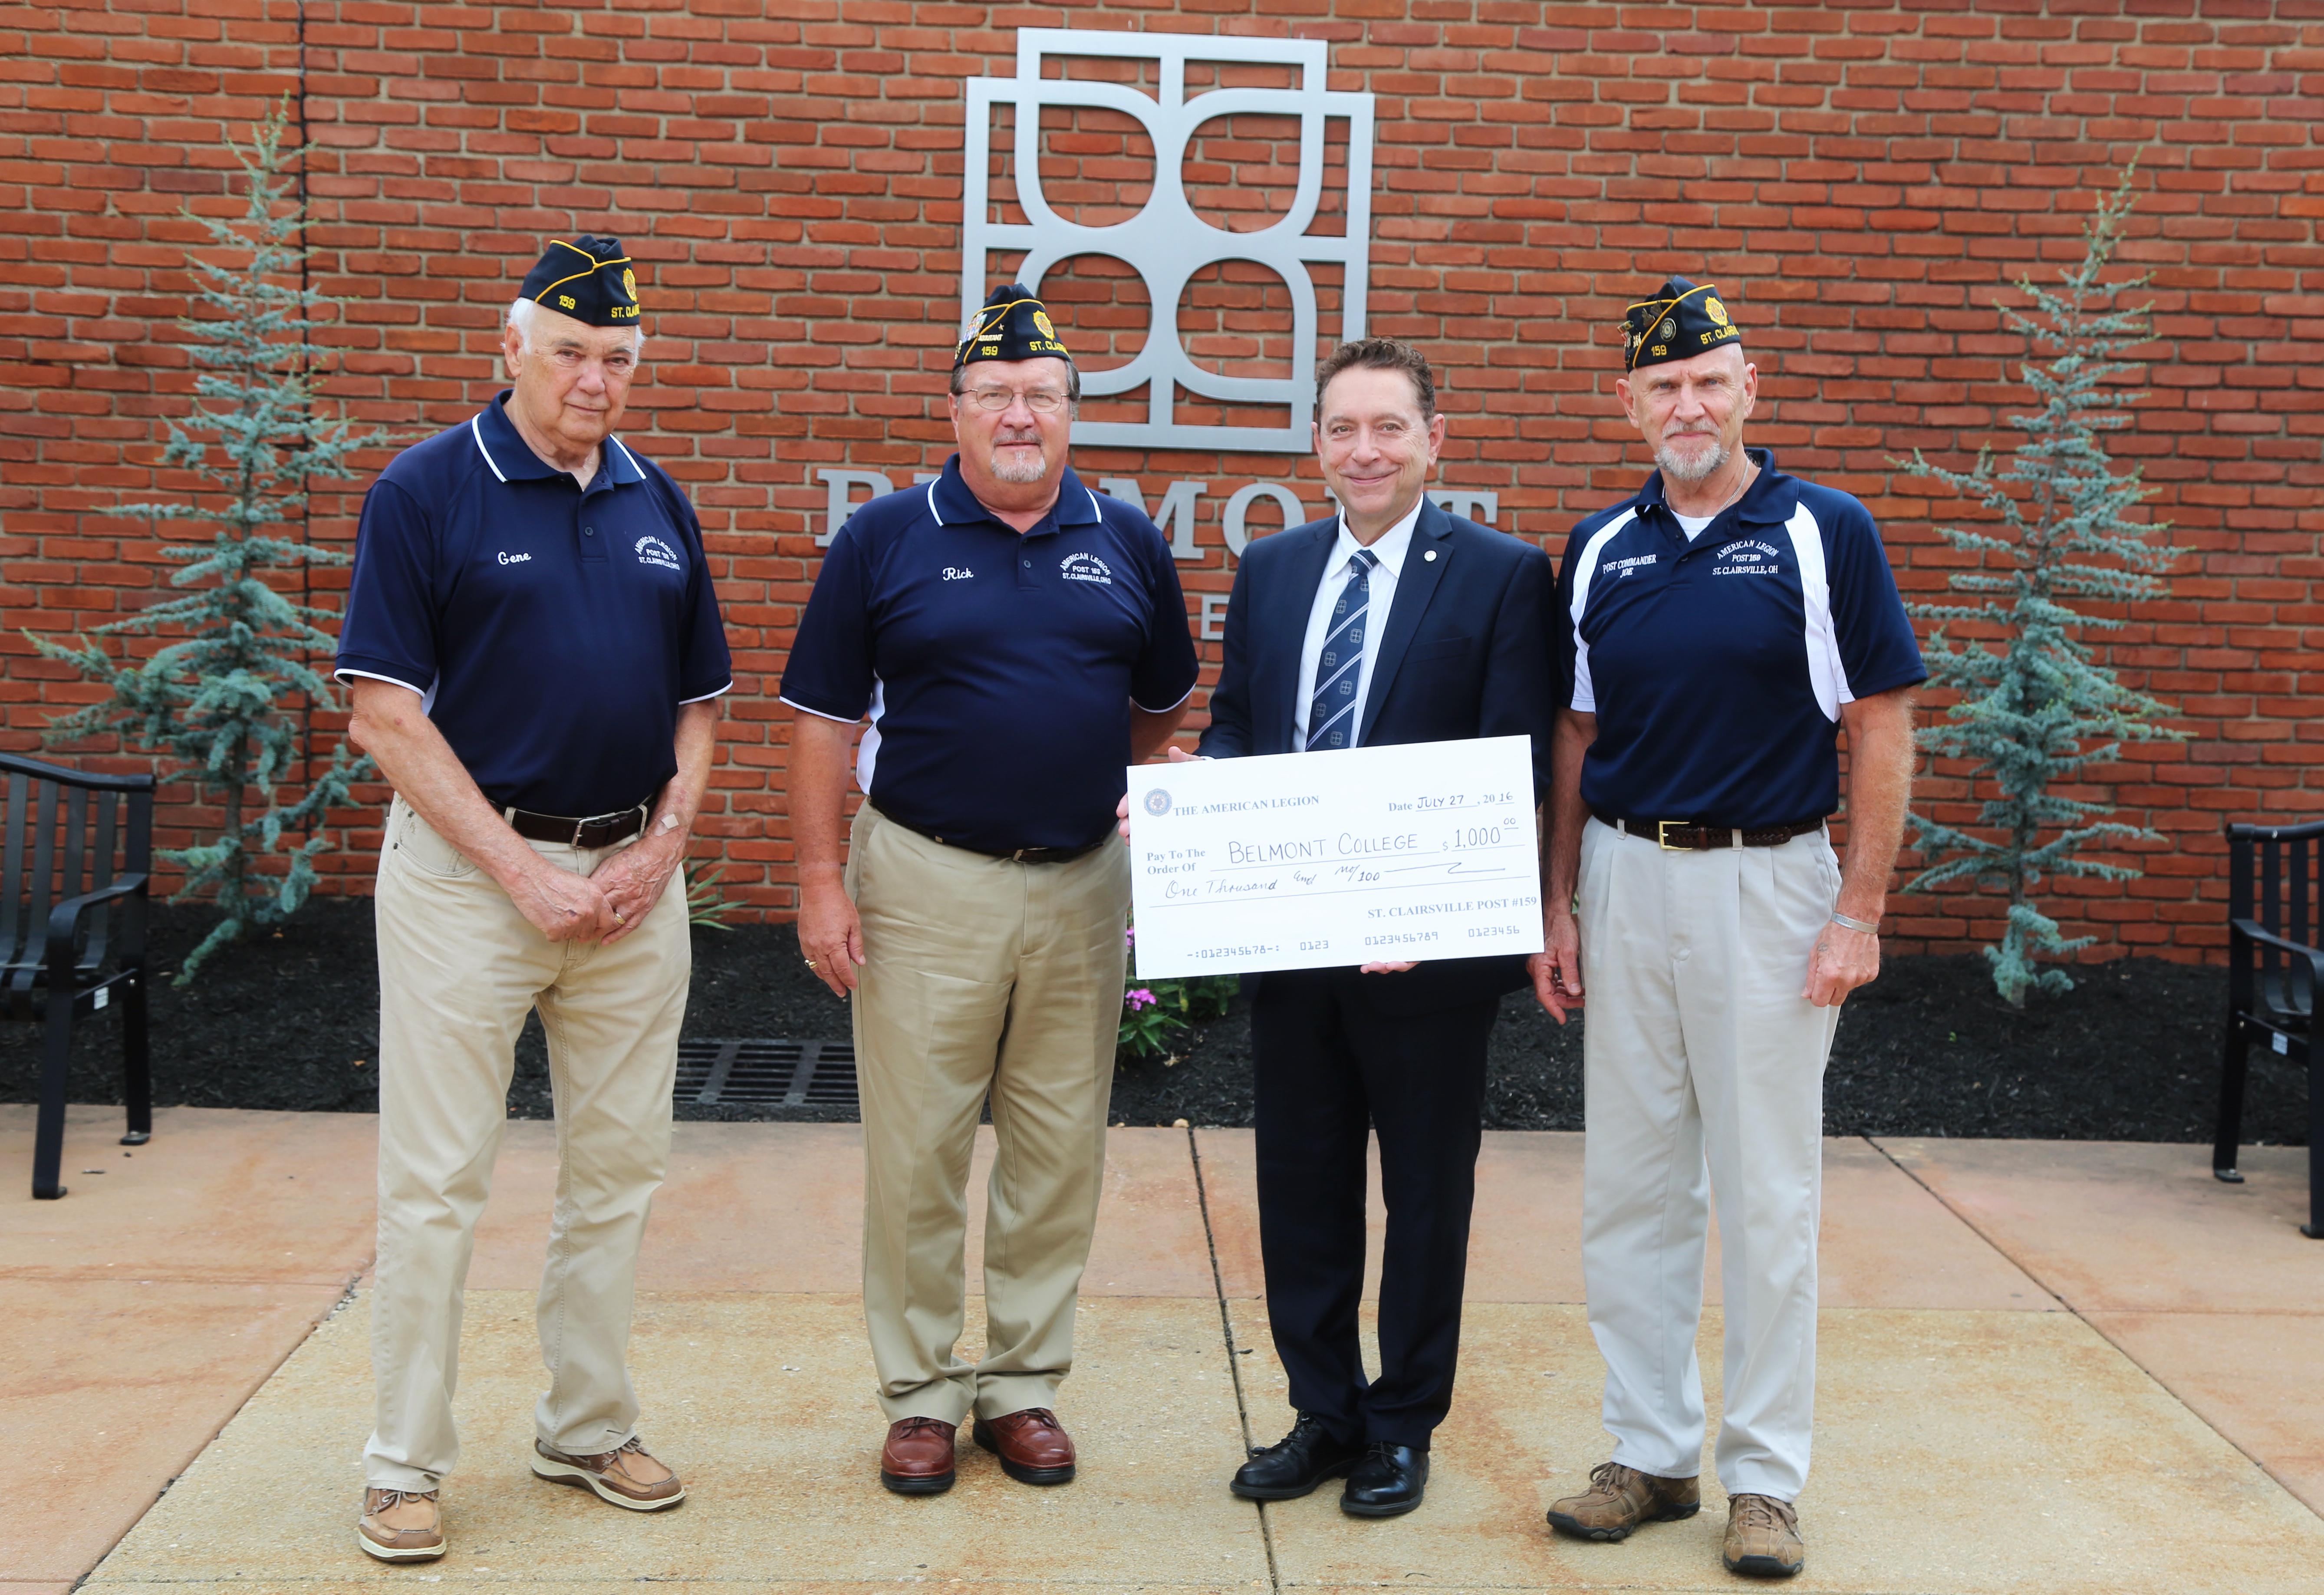 St. Clairsville American Legion Post #159 members present Dr. Paul Gasparro with the check to support the St. Clairsville American Legion Citizenship Scholarship. Pictured left to right are: Gene Kieffer, 1st Vice Commander; Rick Johnson, Post Adjutant; Dr. Paul Gasparro, Belmont College President; and Joe Barker, Commander.